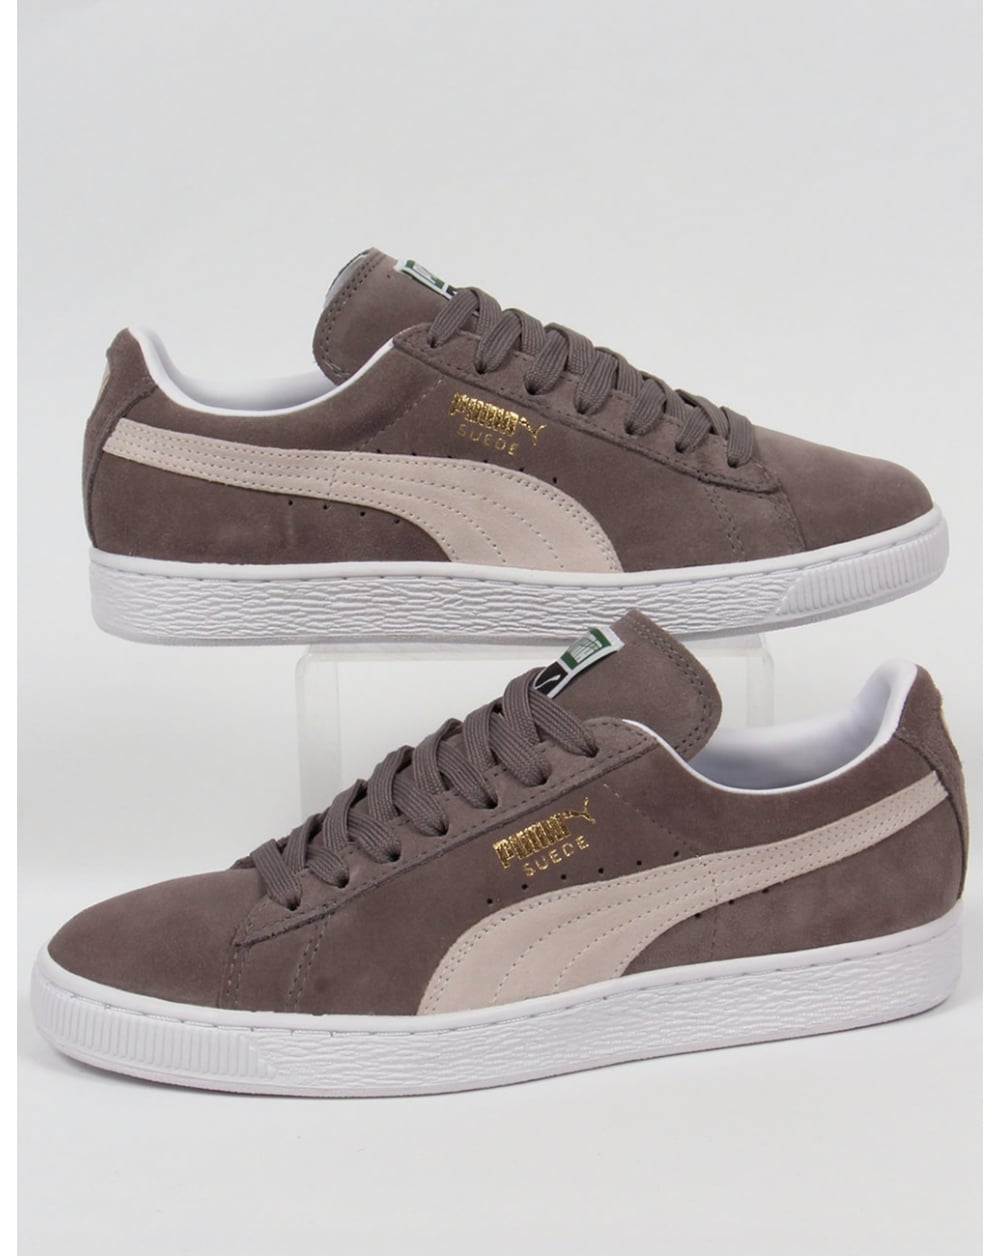 080732326 Puma Suede Classic Trainers Steeple Grey/white,shoes,